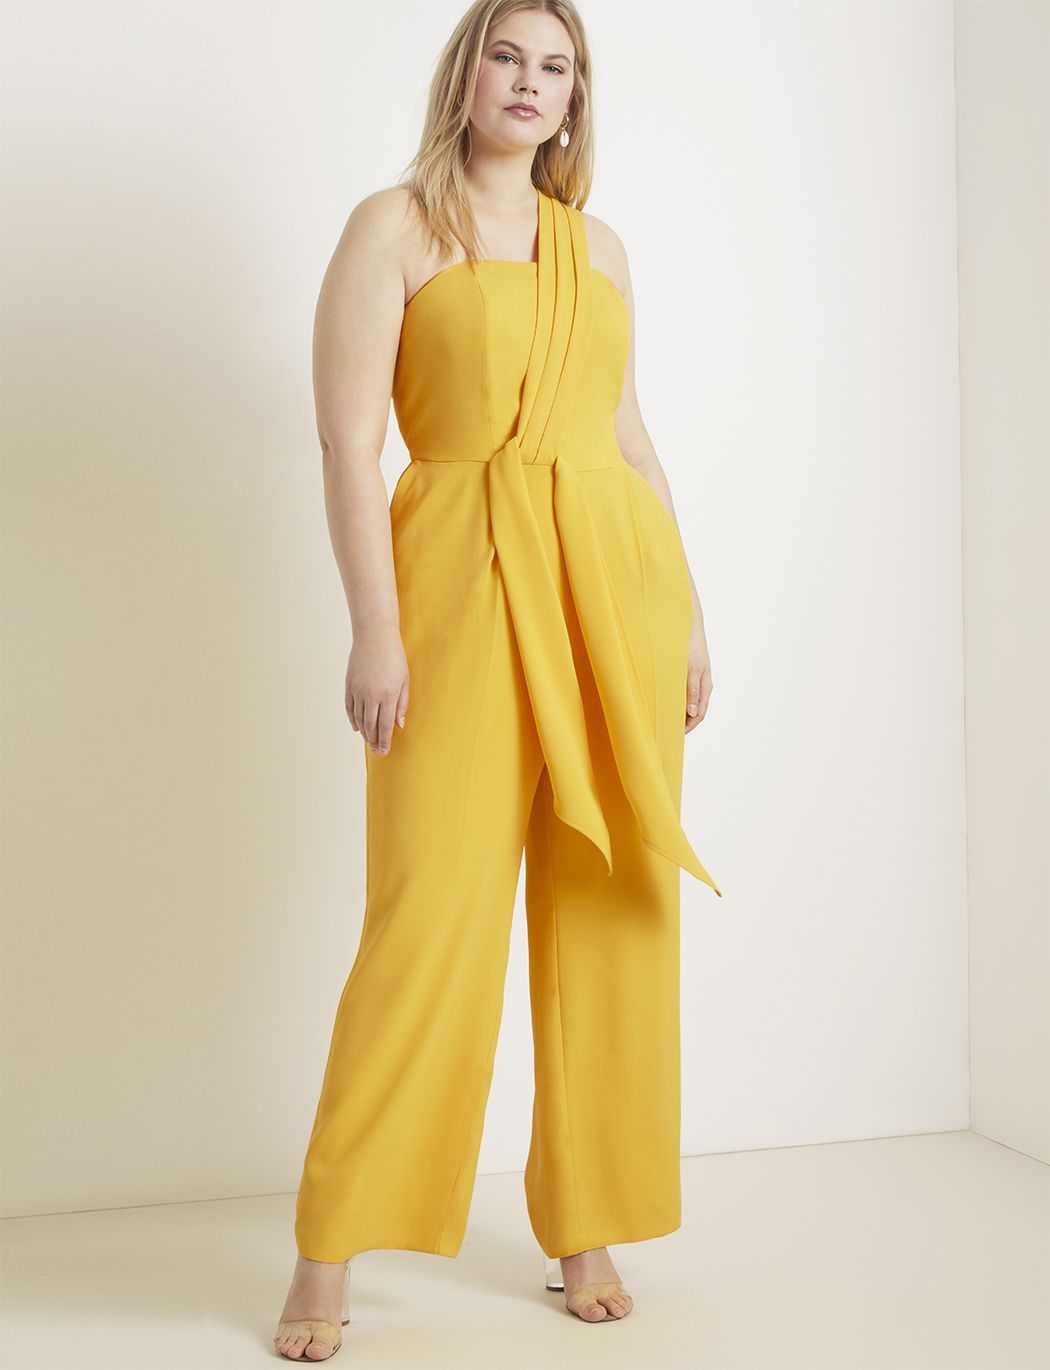 Plus-size women Jumpsuit